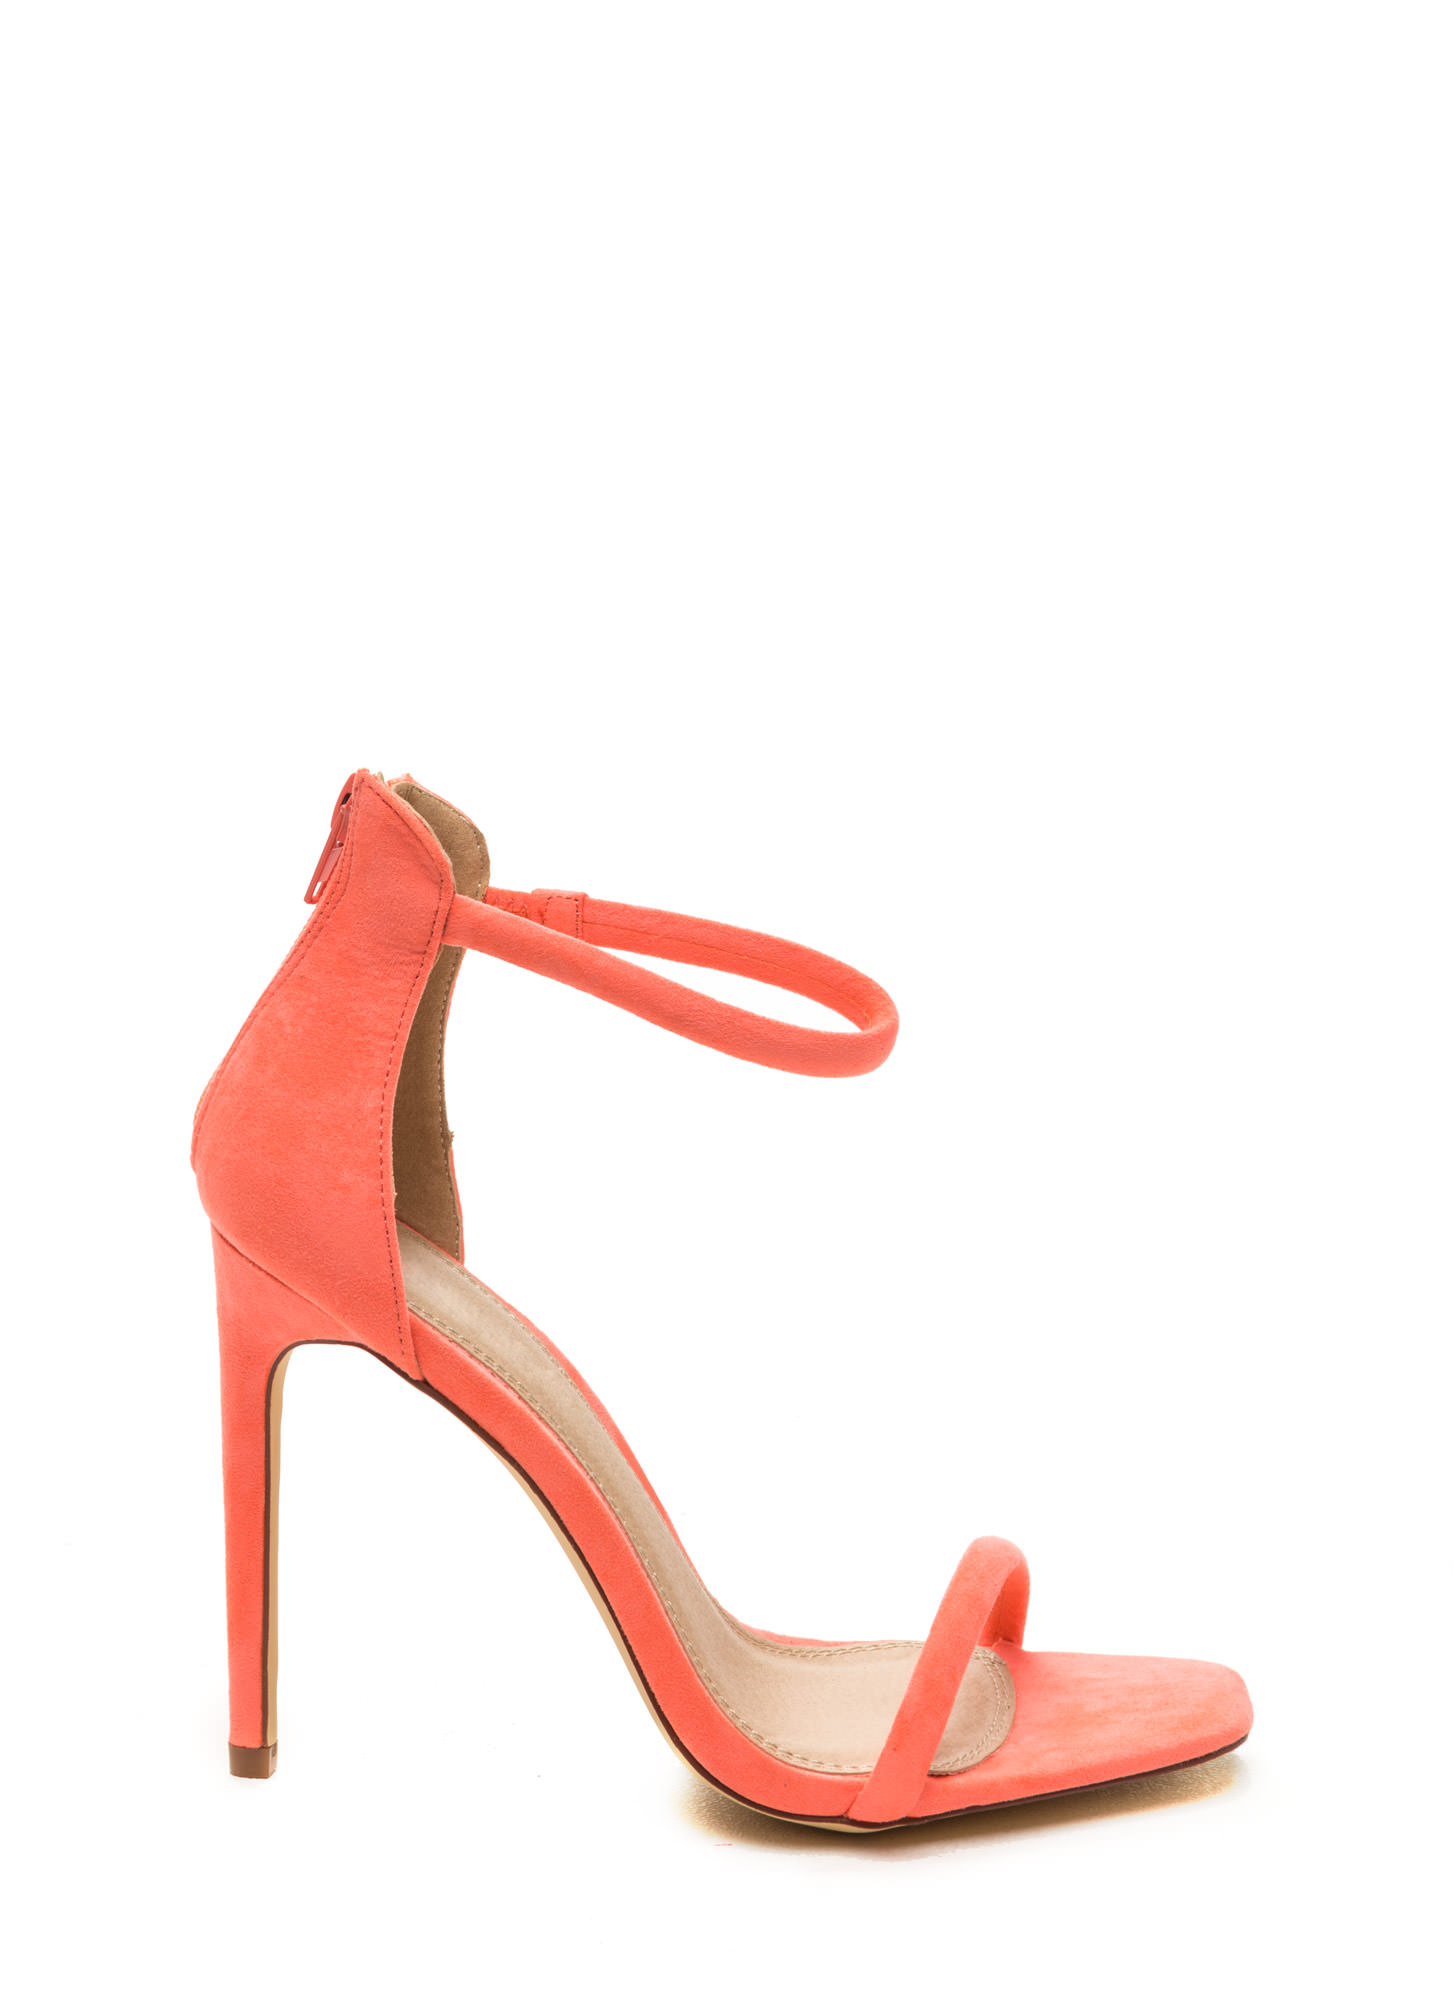 Yellow Ankle Strap Heels - Is Heel